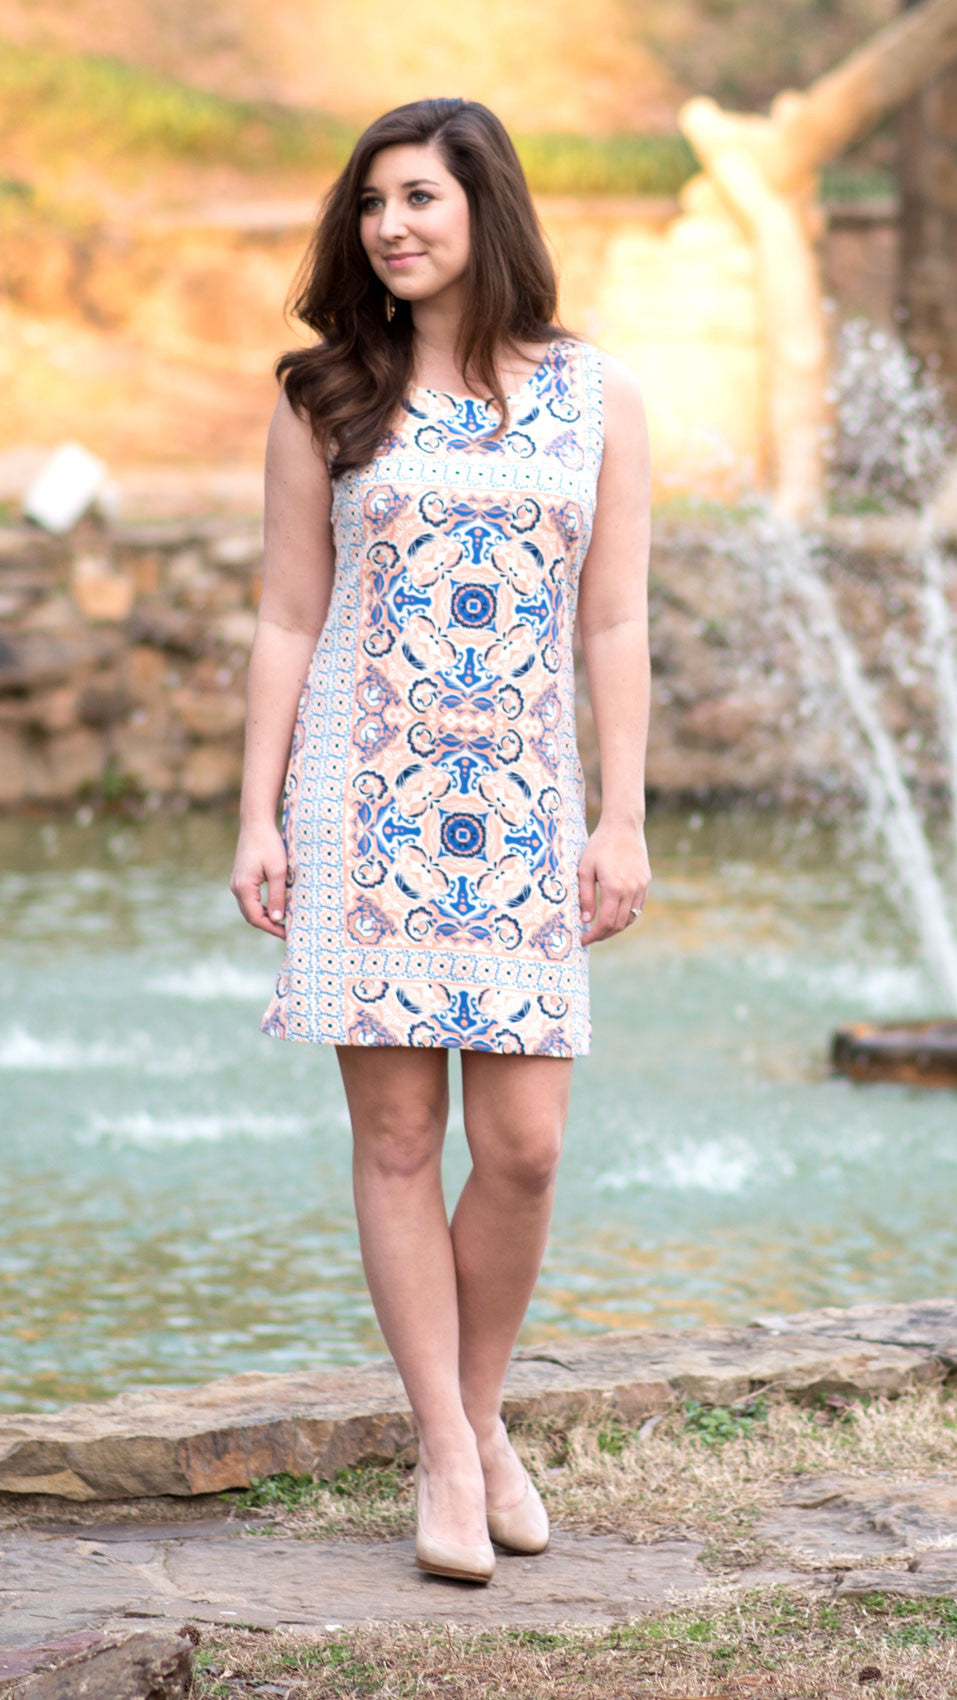 peach and blue patterned sheath dress